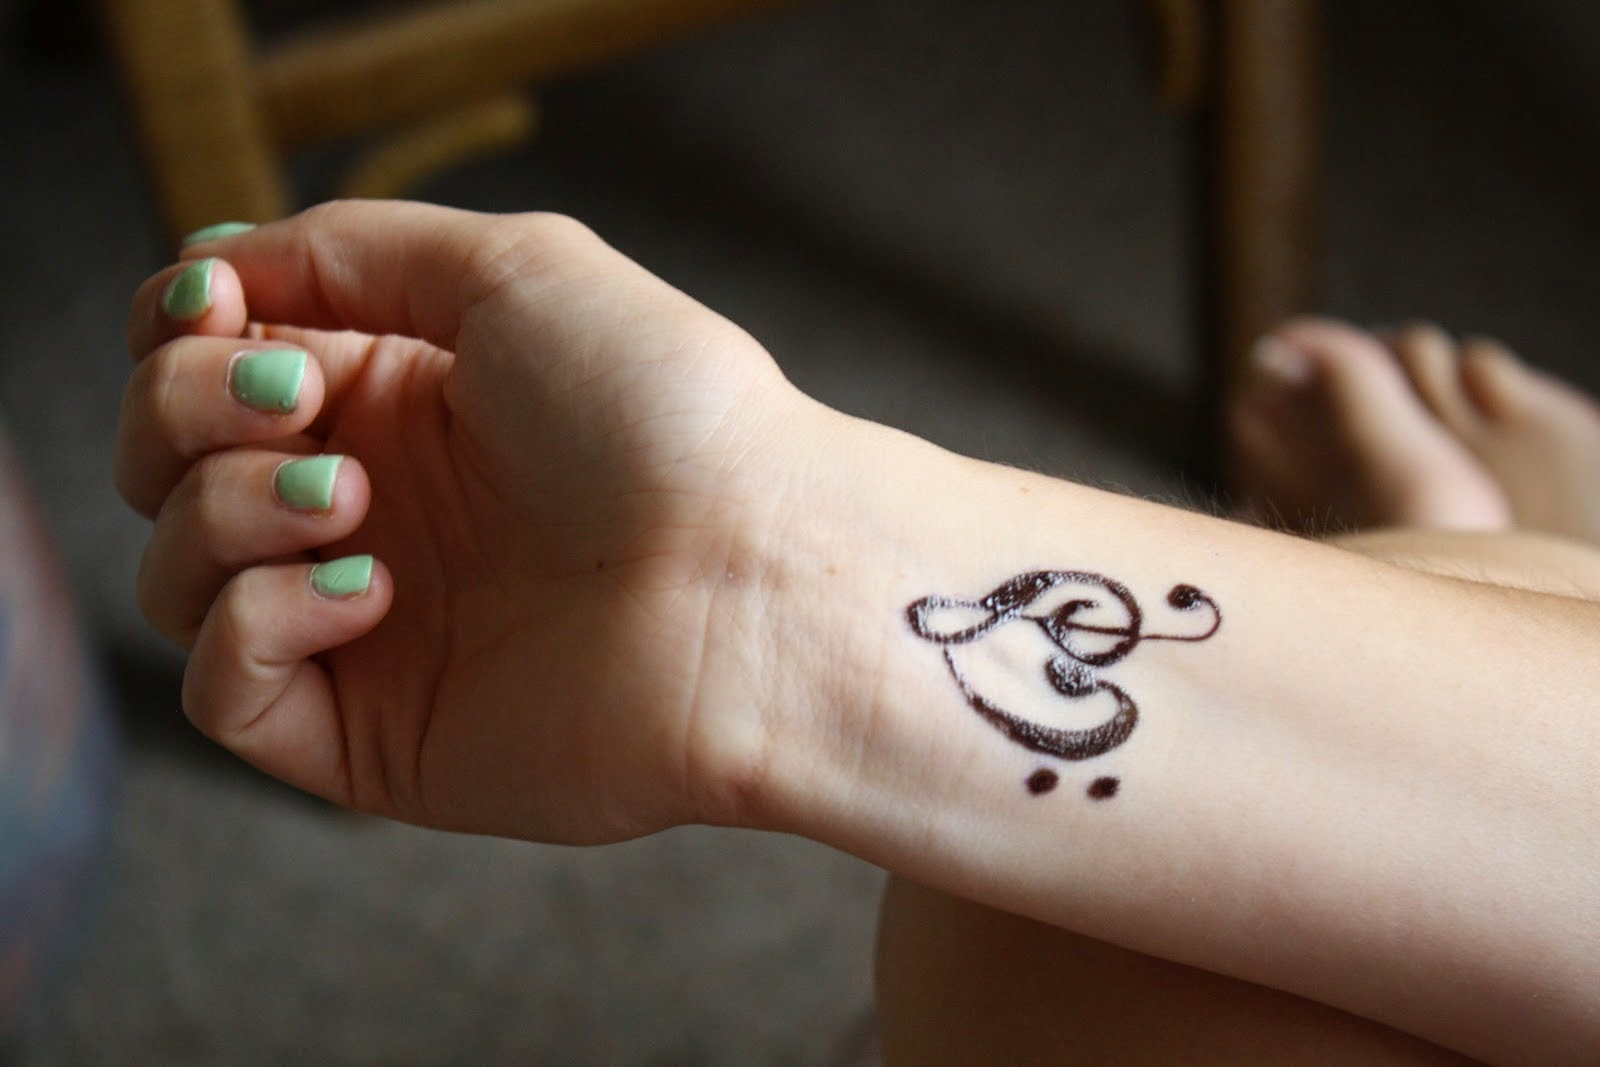 Wrist Tattoos For Girls Nail Art And Tattoo Design Ideas